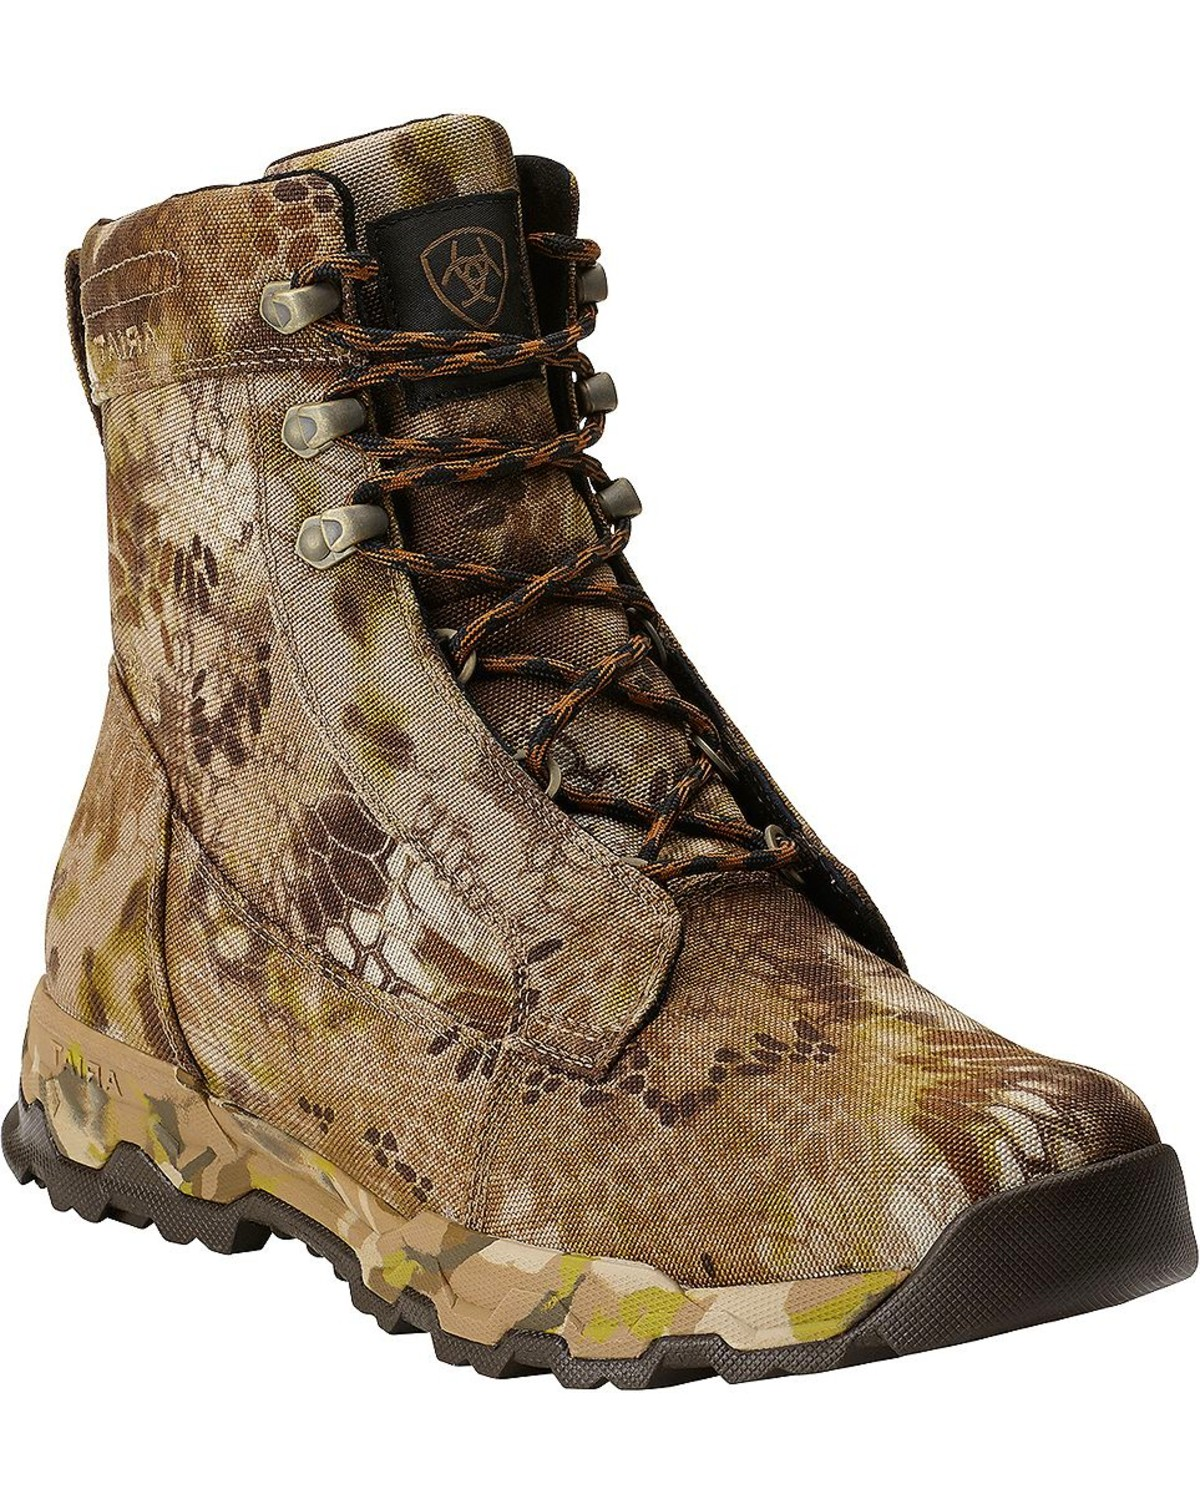 "Ariat FPS Kryptek Waterproof & Insulated 7"" Lace-Up Hunting Boots ..."